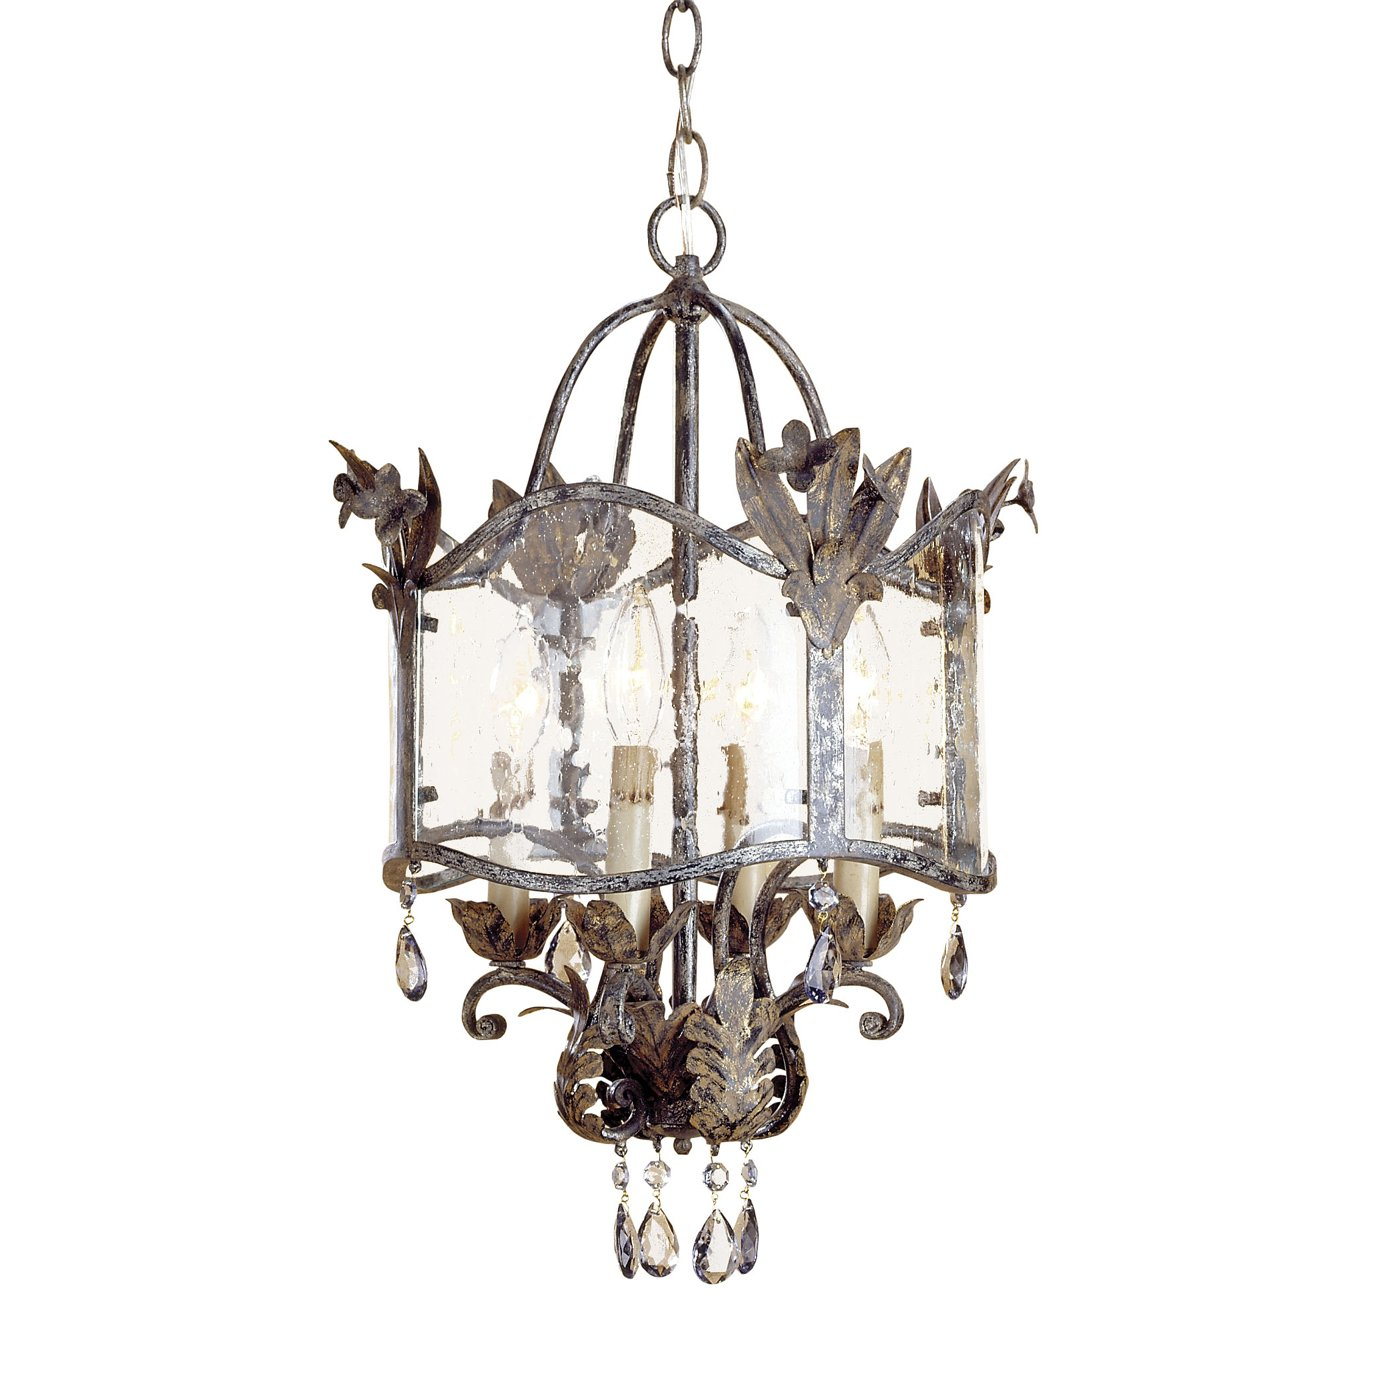 The wrought iron, seeded glass, and crystal 9357 Zara Pendant from Currey u0026  Company is available in several different